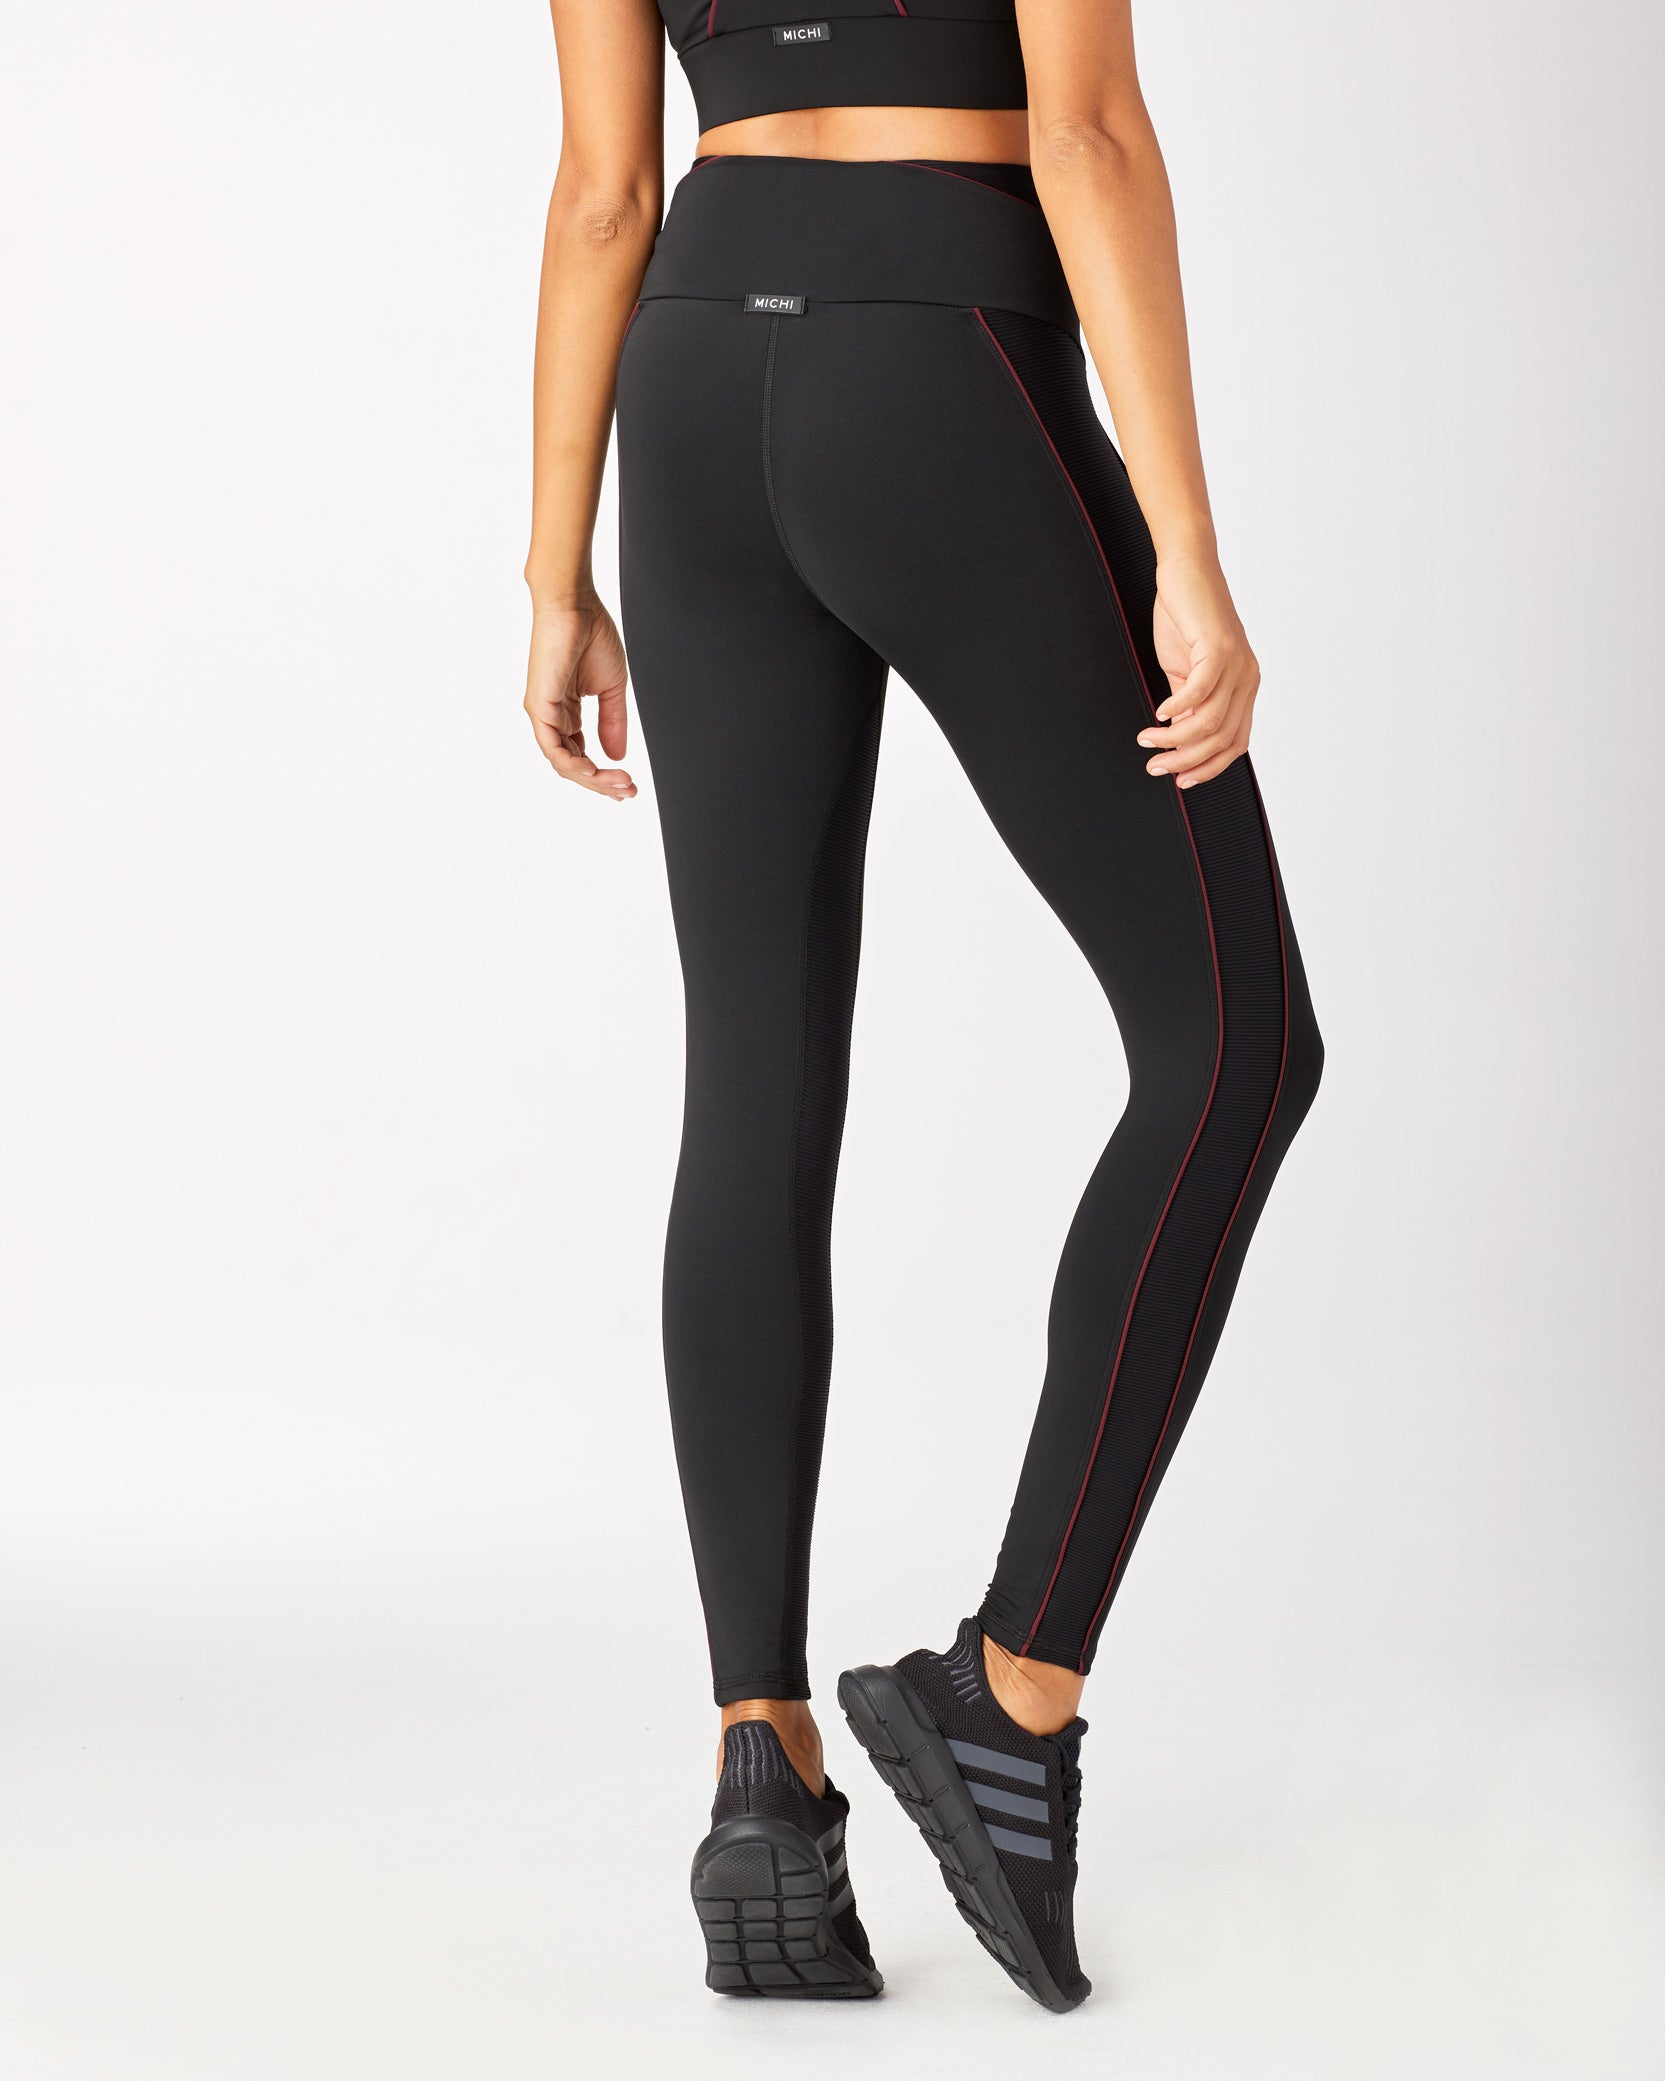 Midnight High Waisted Legging - Black/Wine